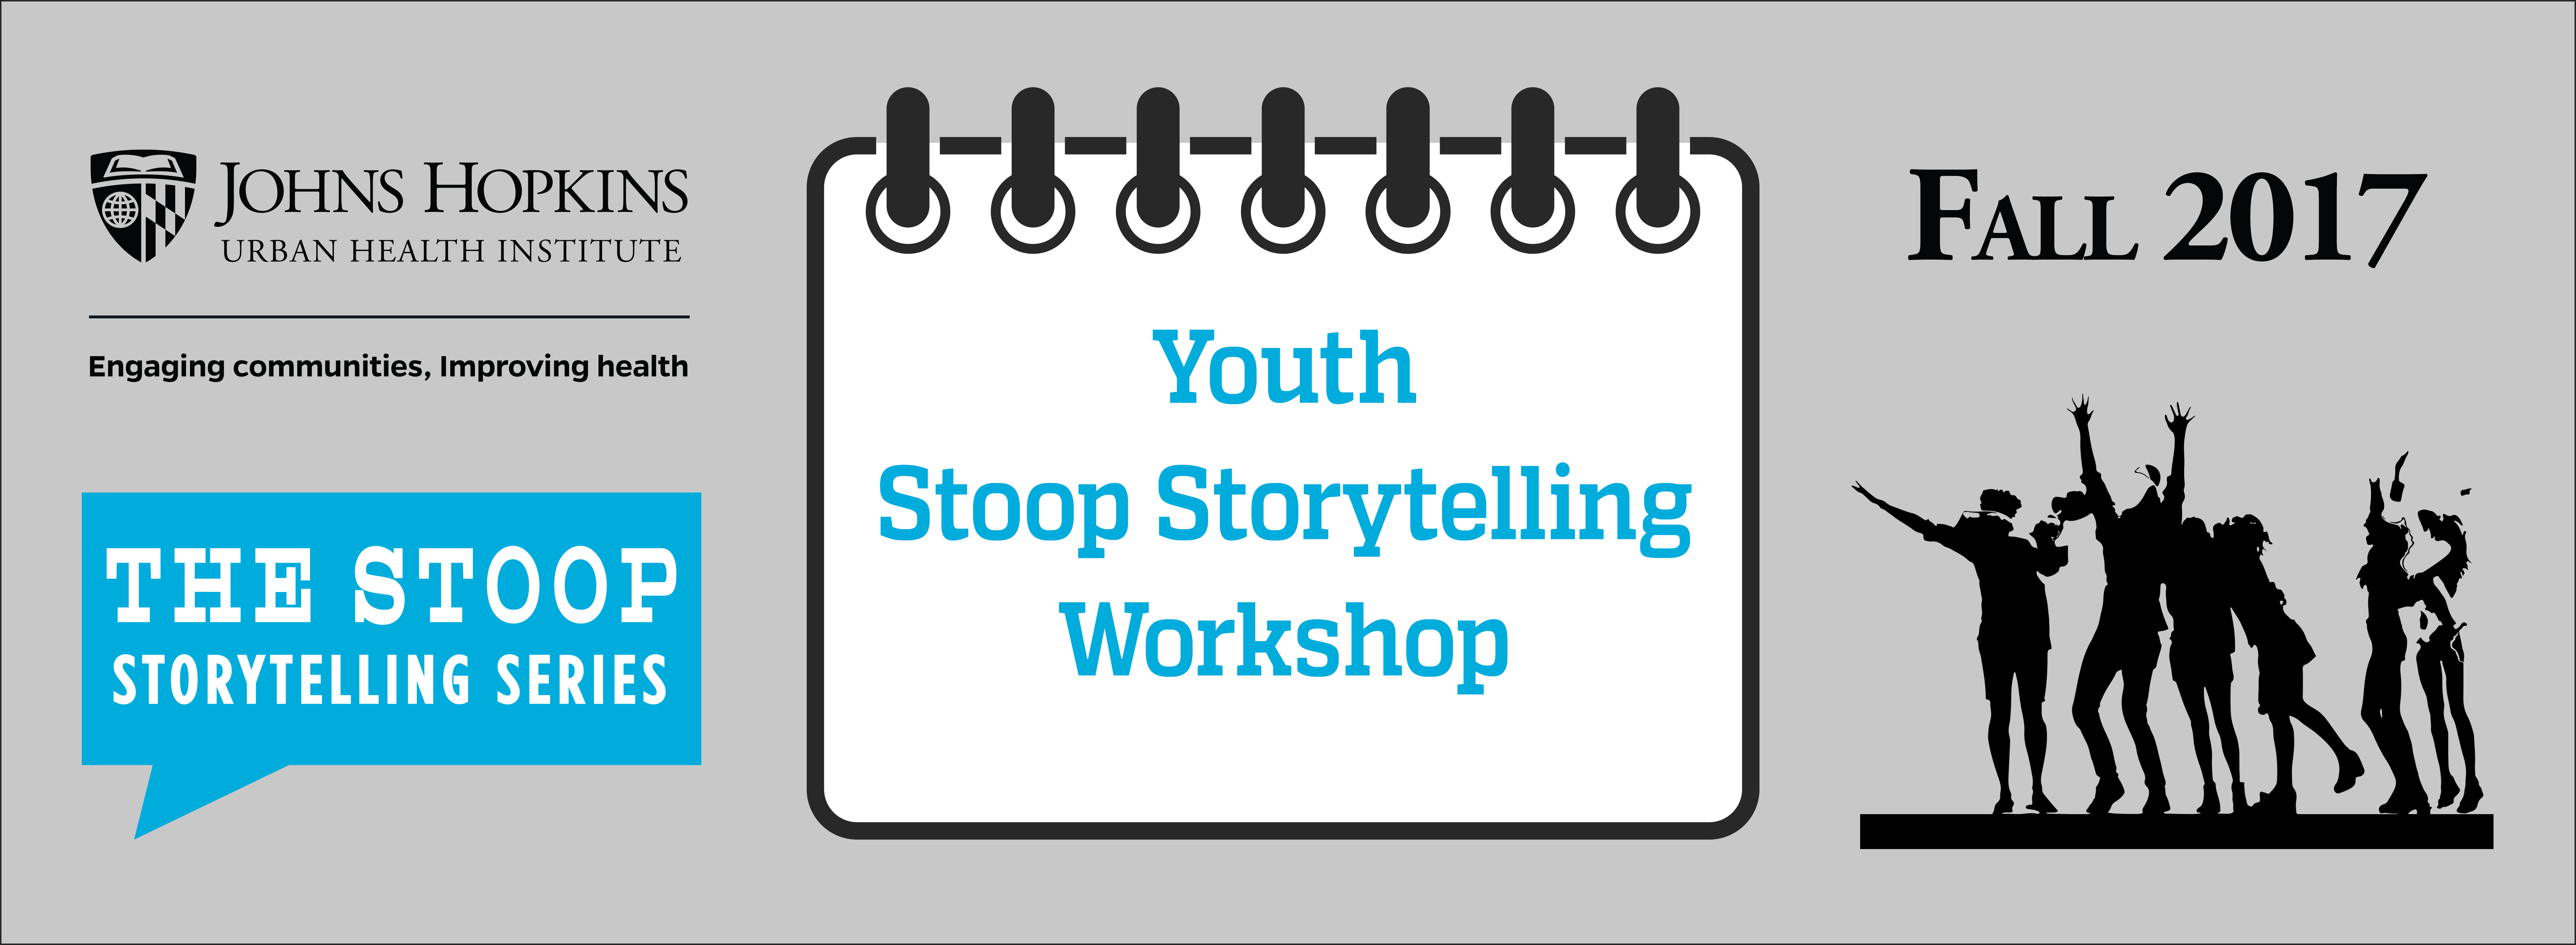 Stoop storytelling workshop